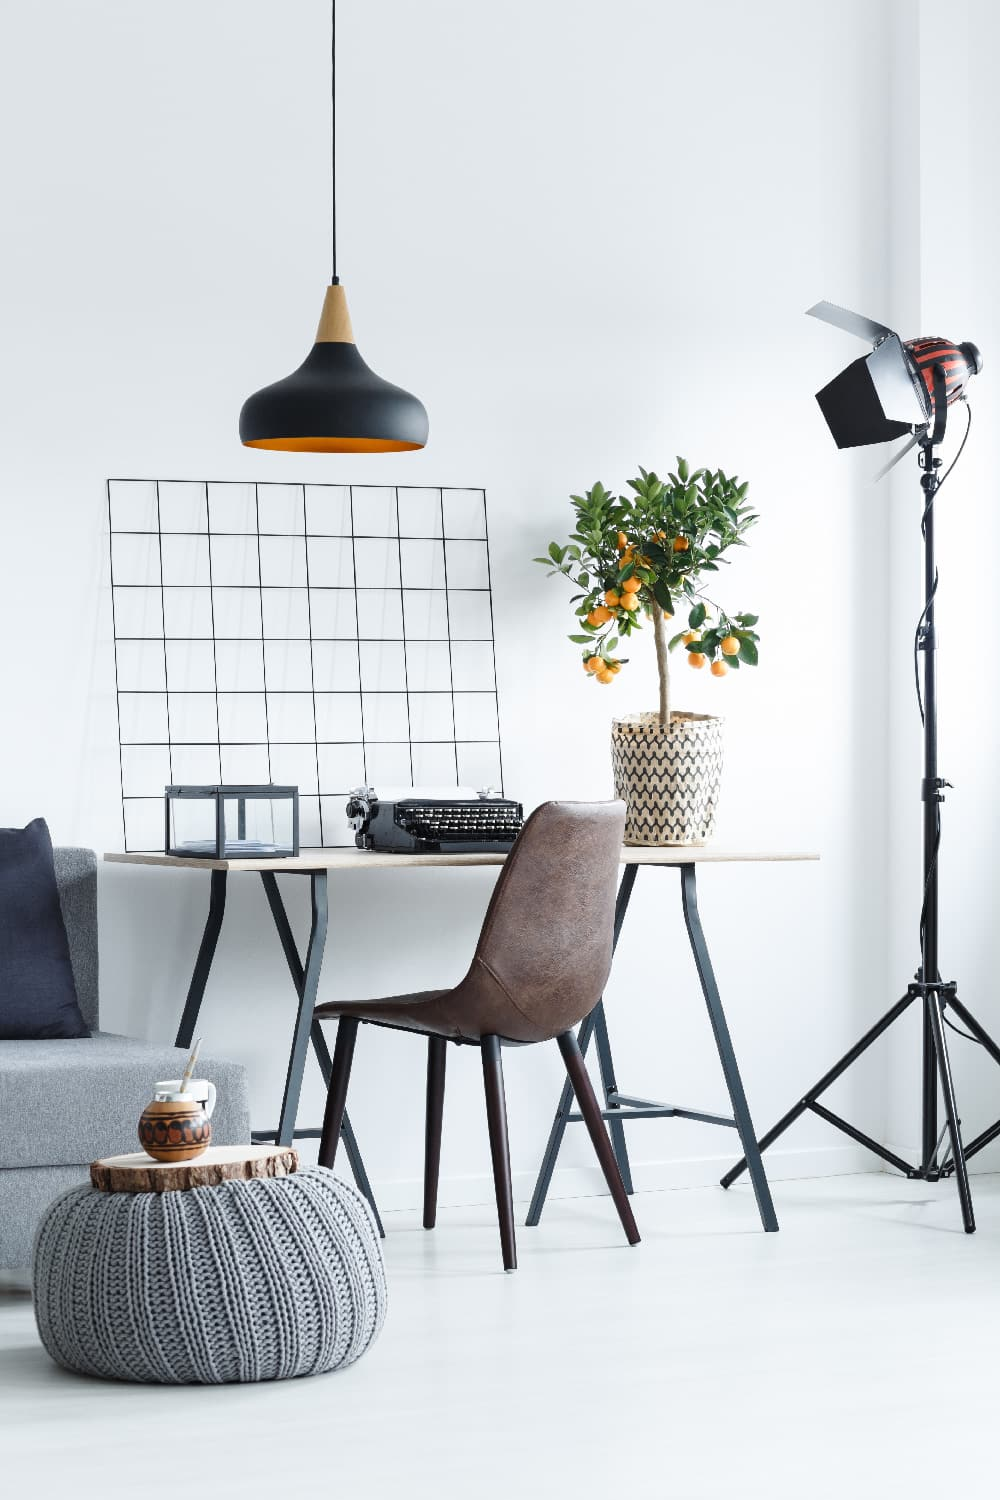 View of a modern office with a leather chair and a small orange tree on a wooden desk: the perfect corner to make money from home.